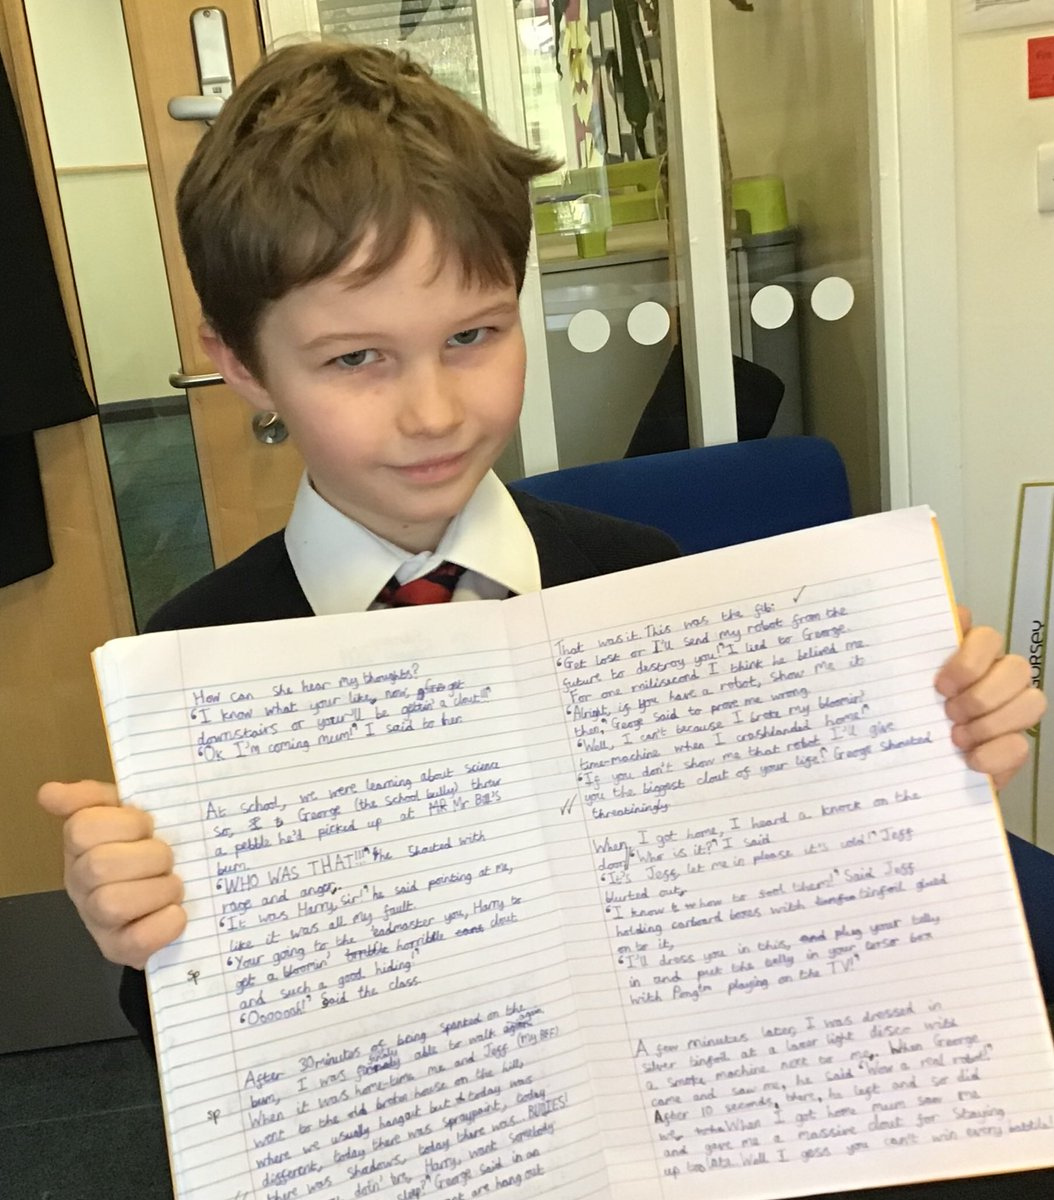 test Twitter Media - Well done to this writing star for producing an entertaining tale inspired by one of ⁦@GorseyY5⁩ bookshelf texts, The Fib by ⁦@Thegeorgelayton⁩ #gorseyenglish #gorseybookclub #possibilities https://t.co/QOwWi41TCv